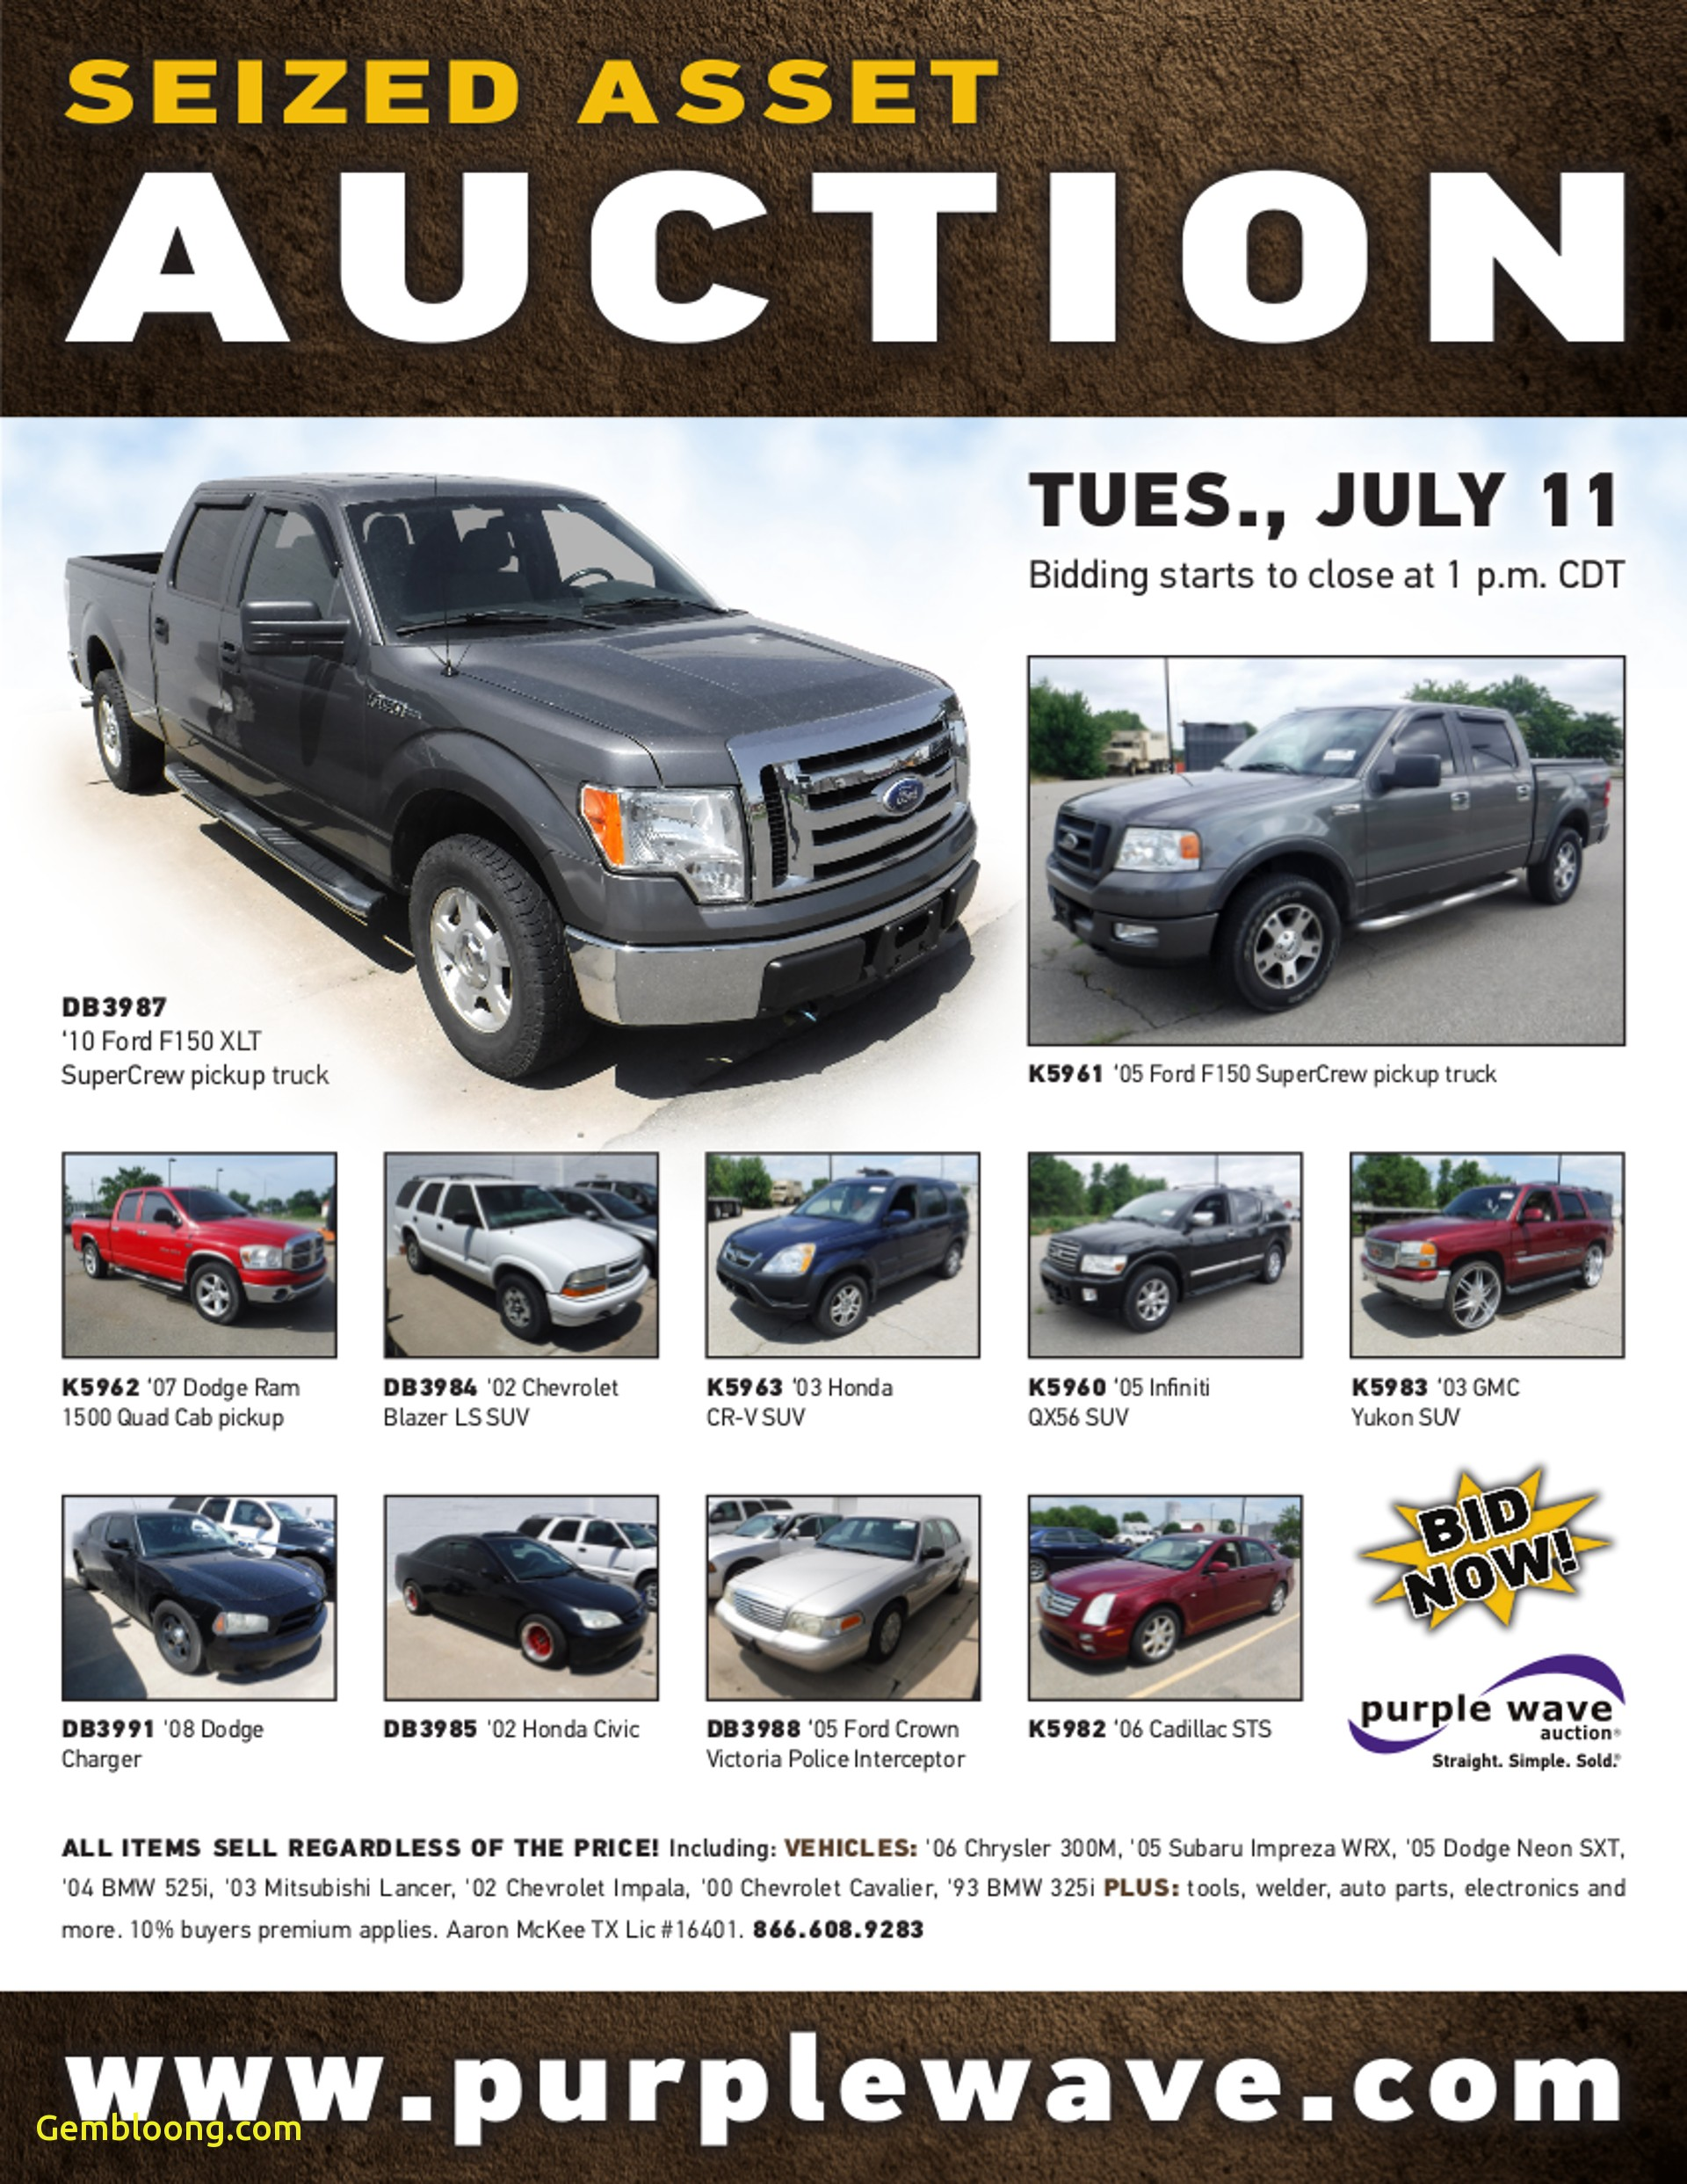 impound cars for sale near me fresh sold july 11 seized asset auction